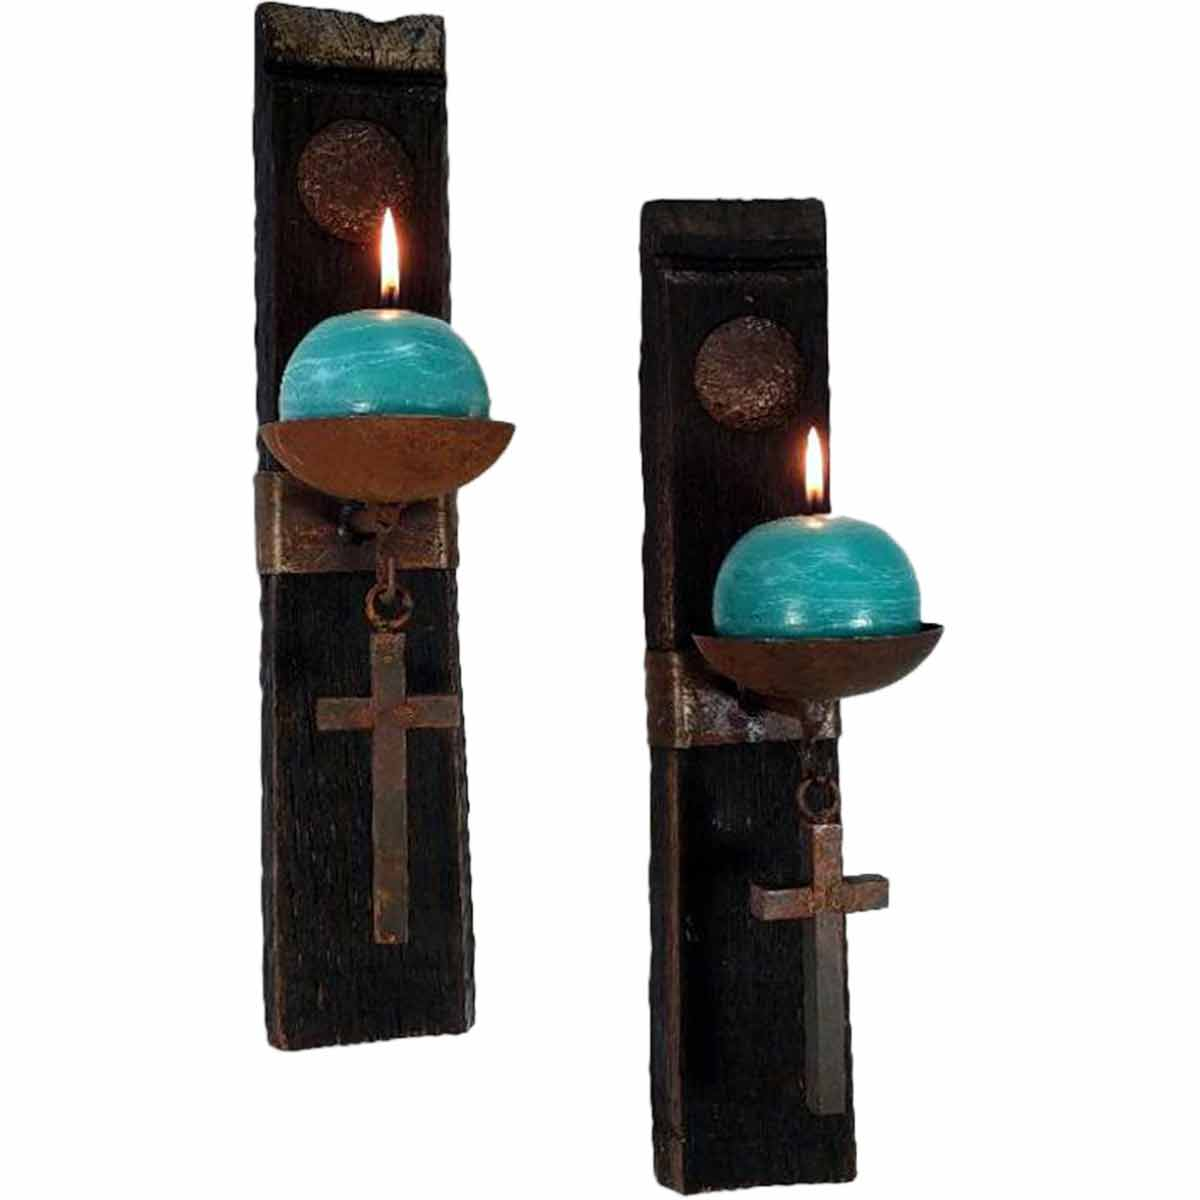 Tequila Stave Candle Holders with Crosses and Turquoise Candles - Set of 2